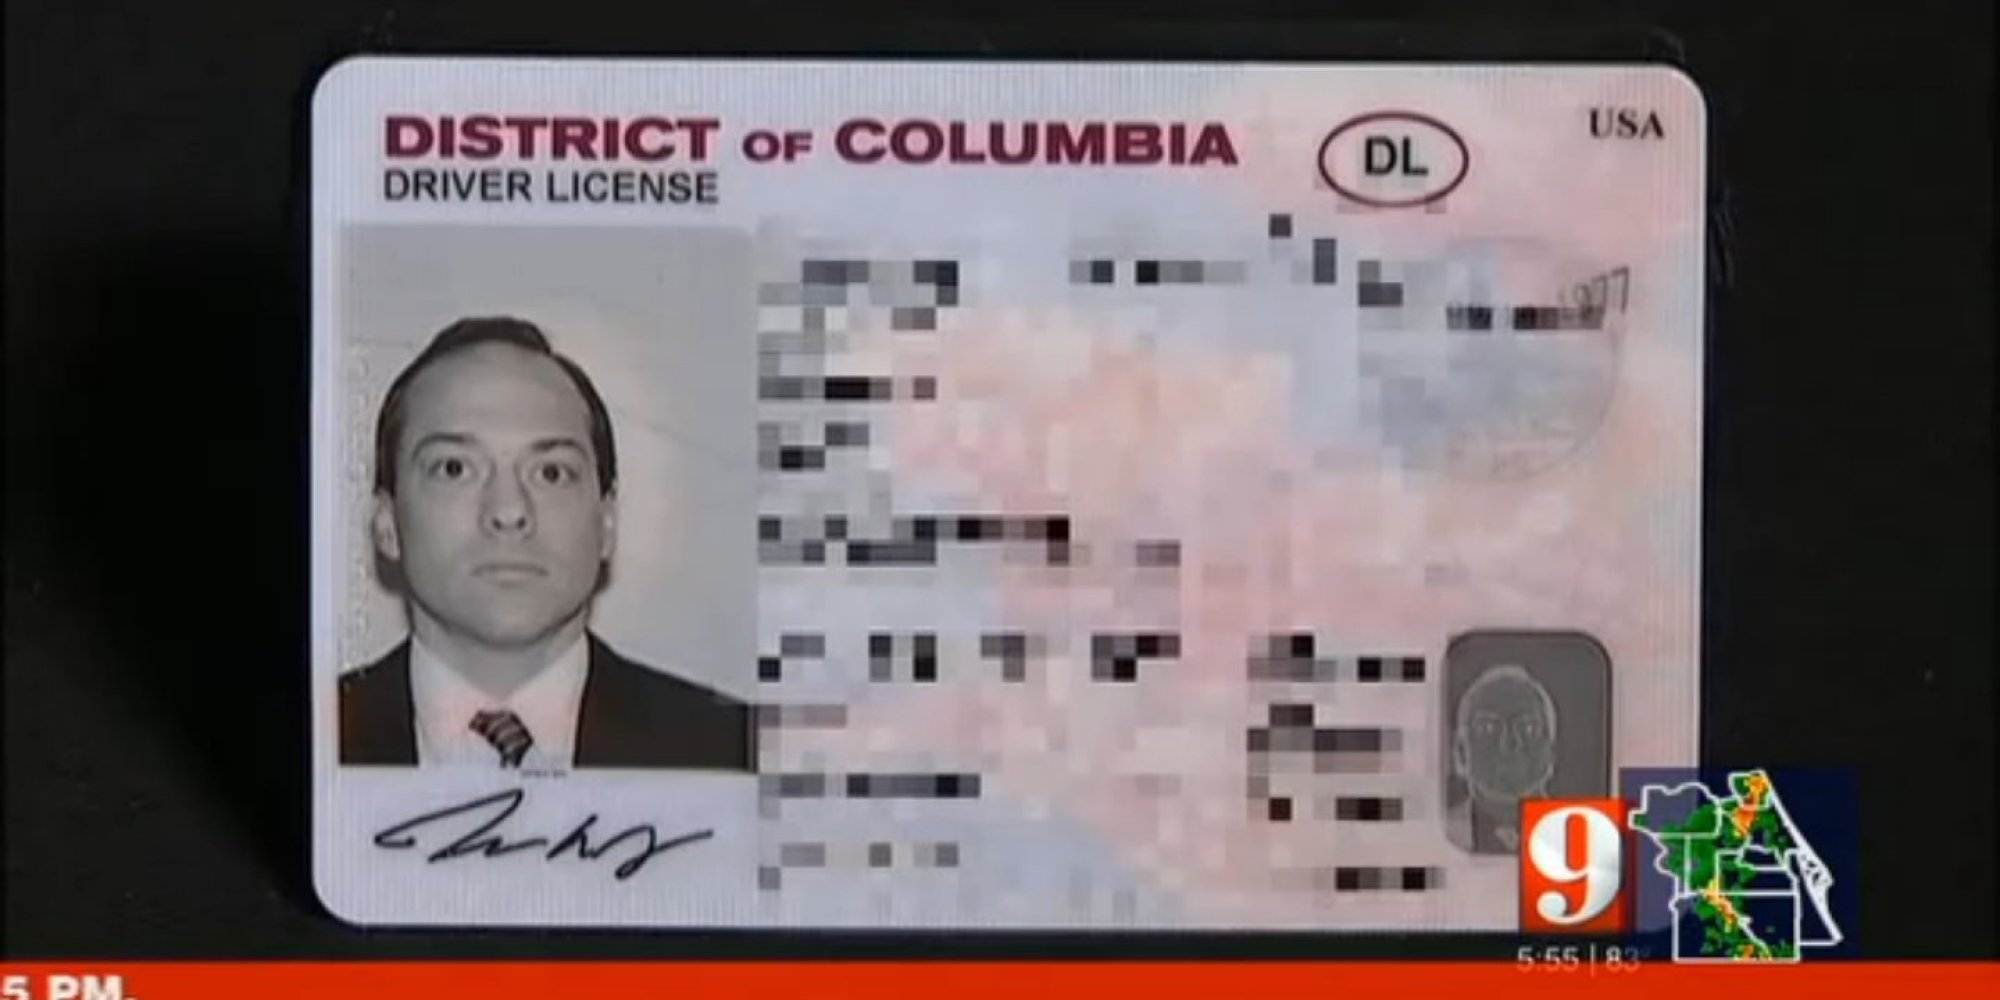 Reporter baffled after tsa agent rejects his district of columbia id reporter baffled after tsa agent rejects his district of columbia id demands to see passport huffpost altavistaventures Gallery